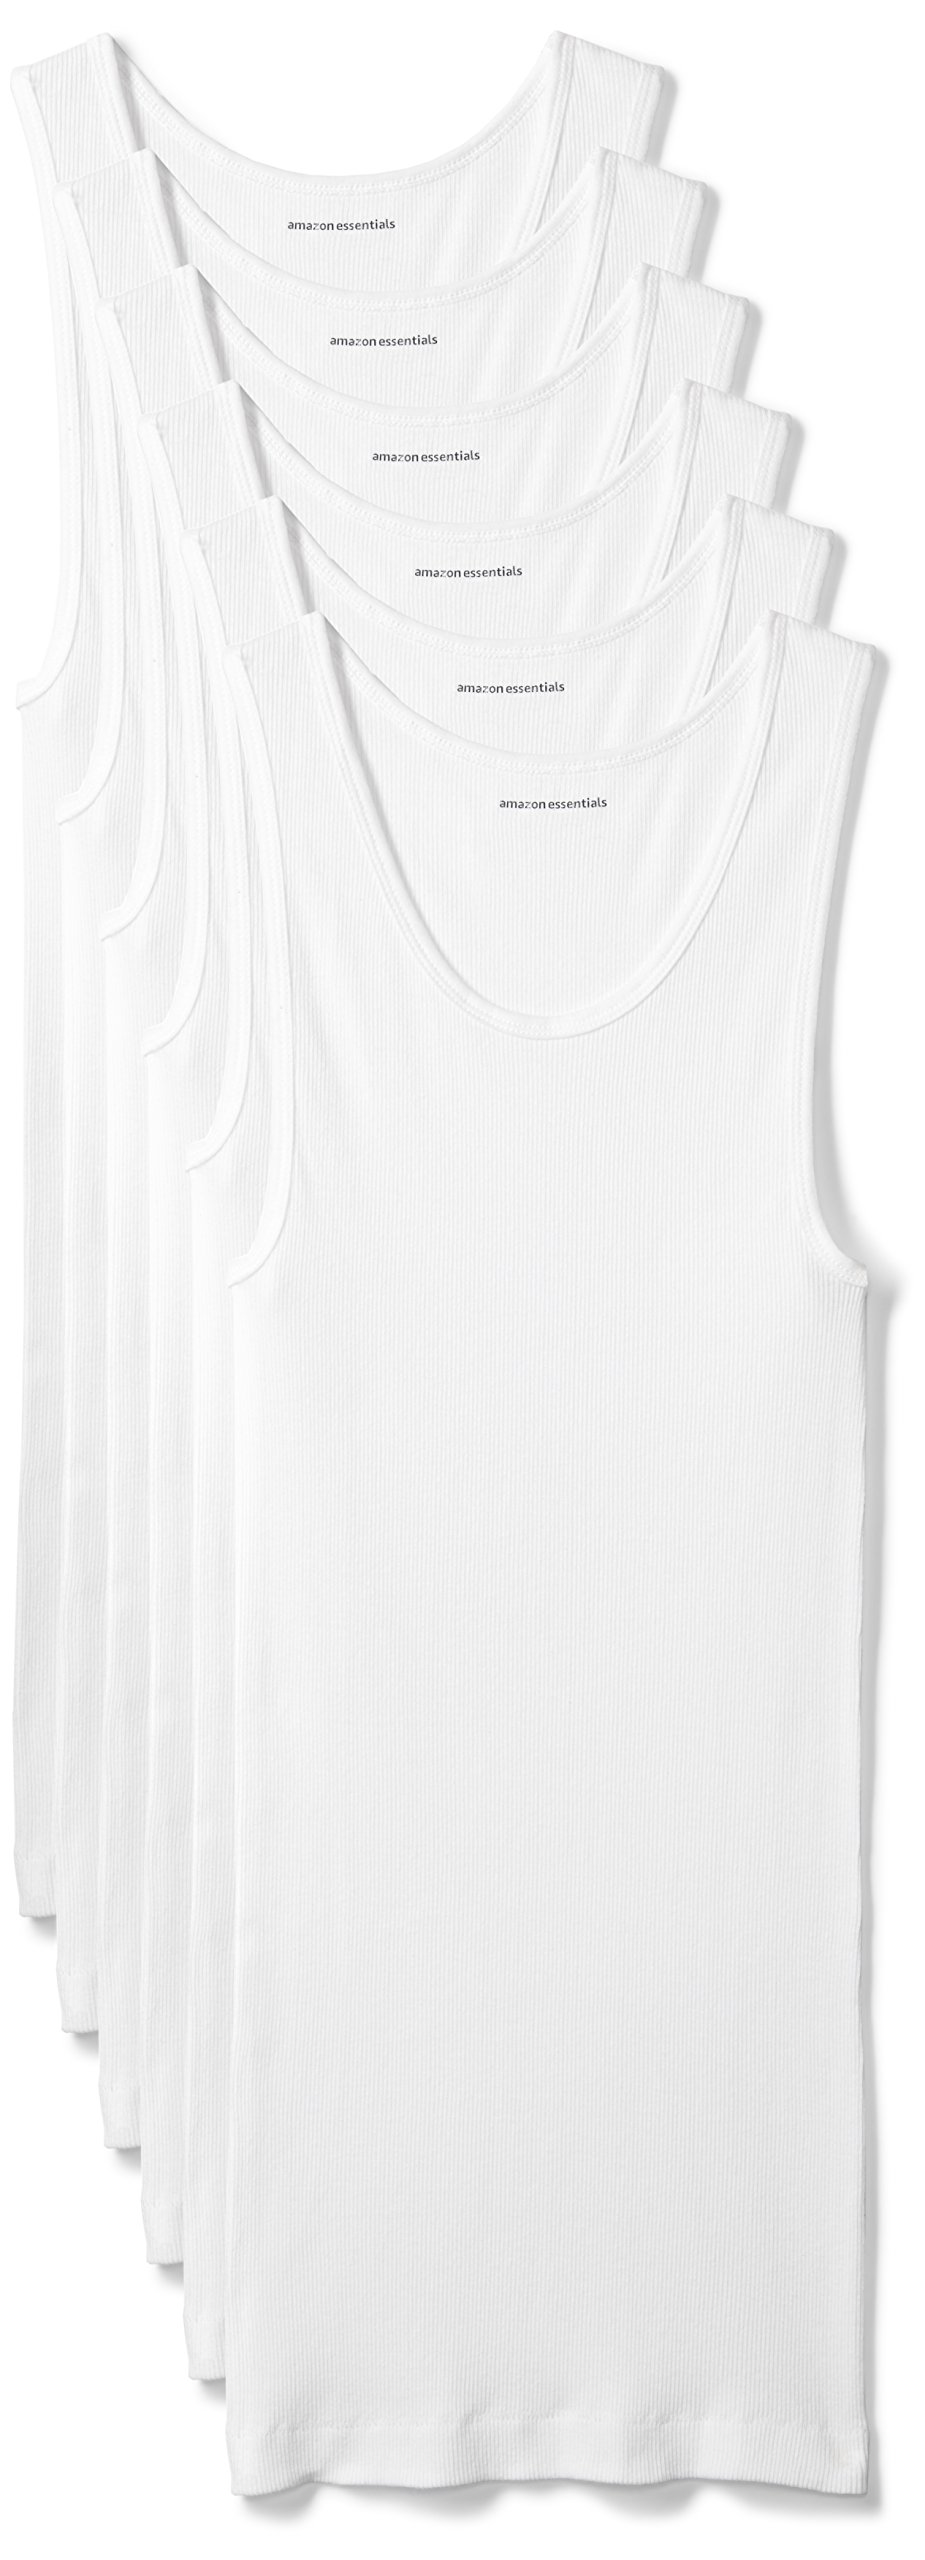 24fb73ab1bc7f3 Best Rated in Men s Undershirts   Helpful Customer Reviews - Amazon.com